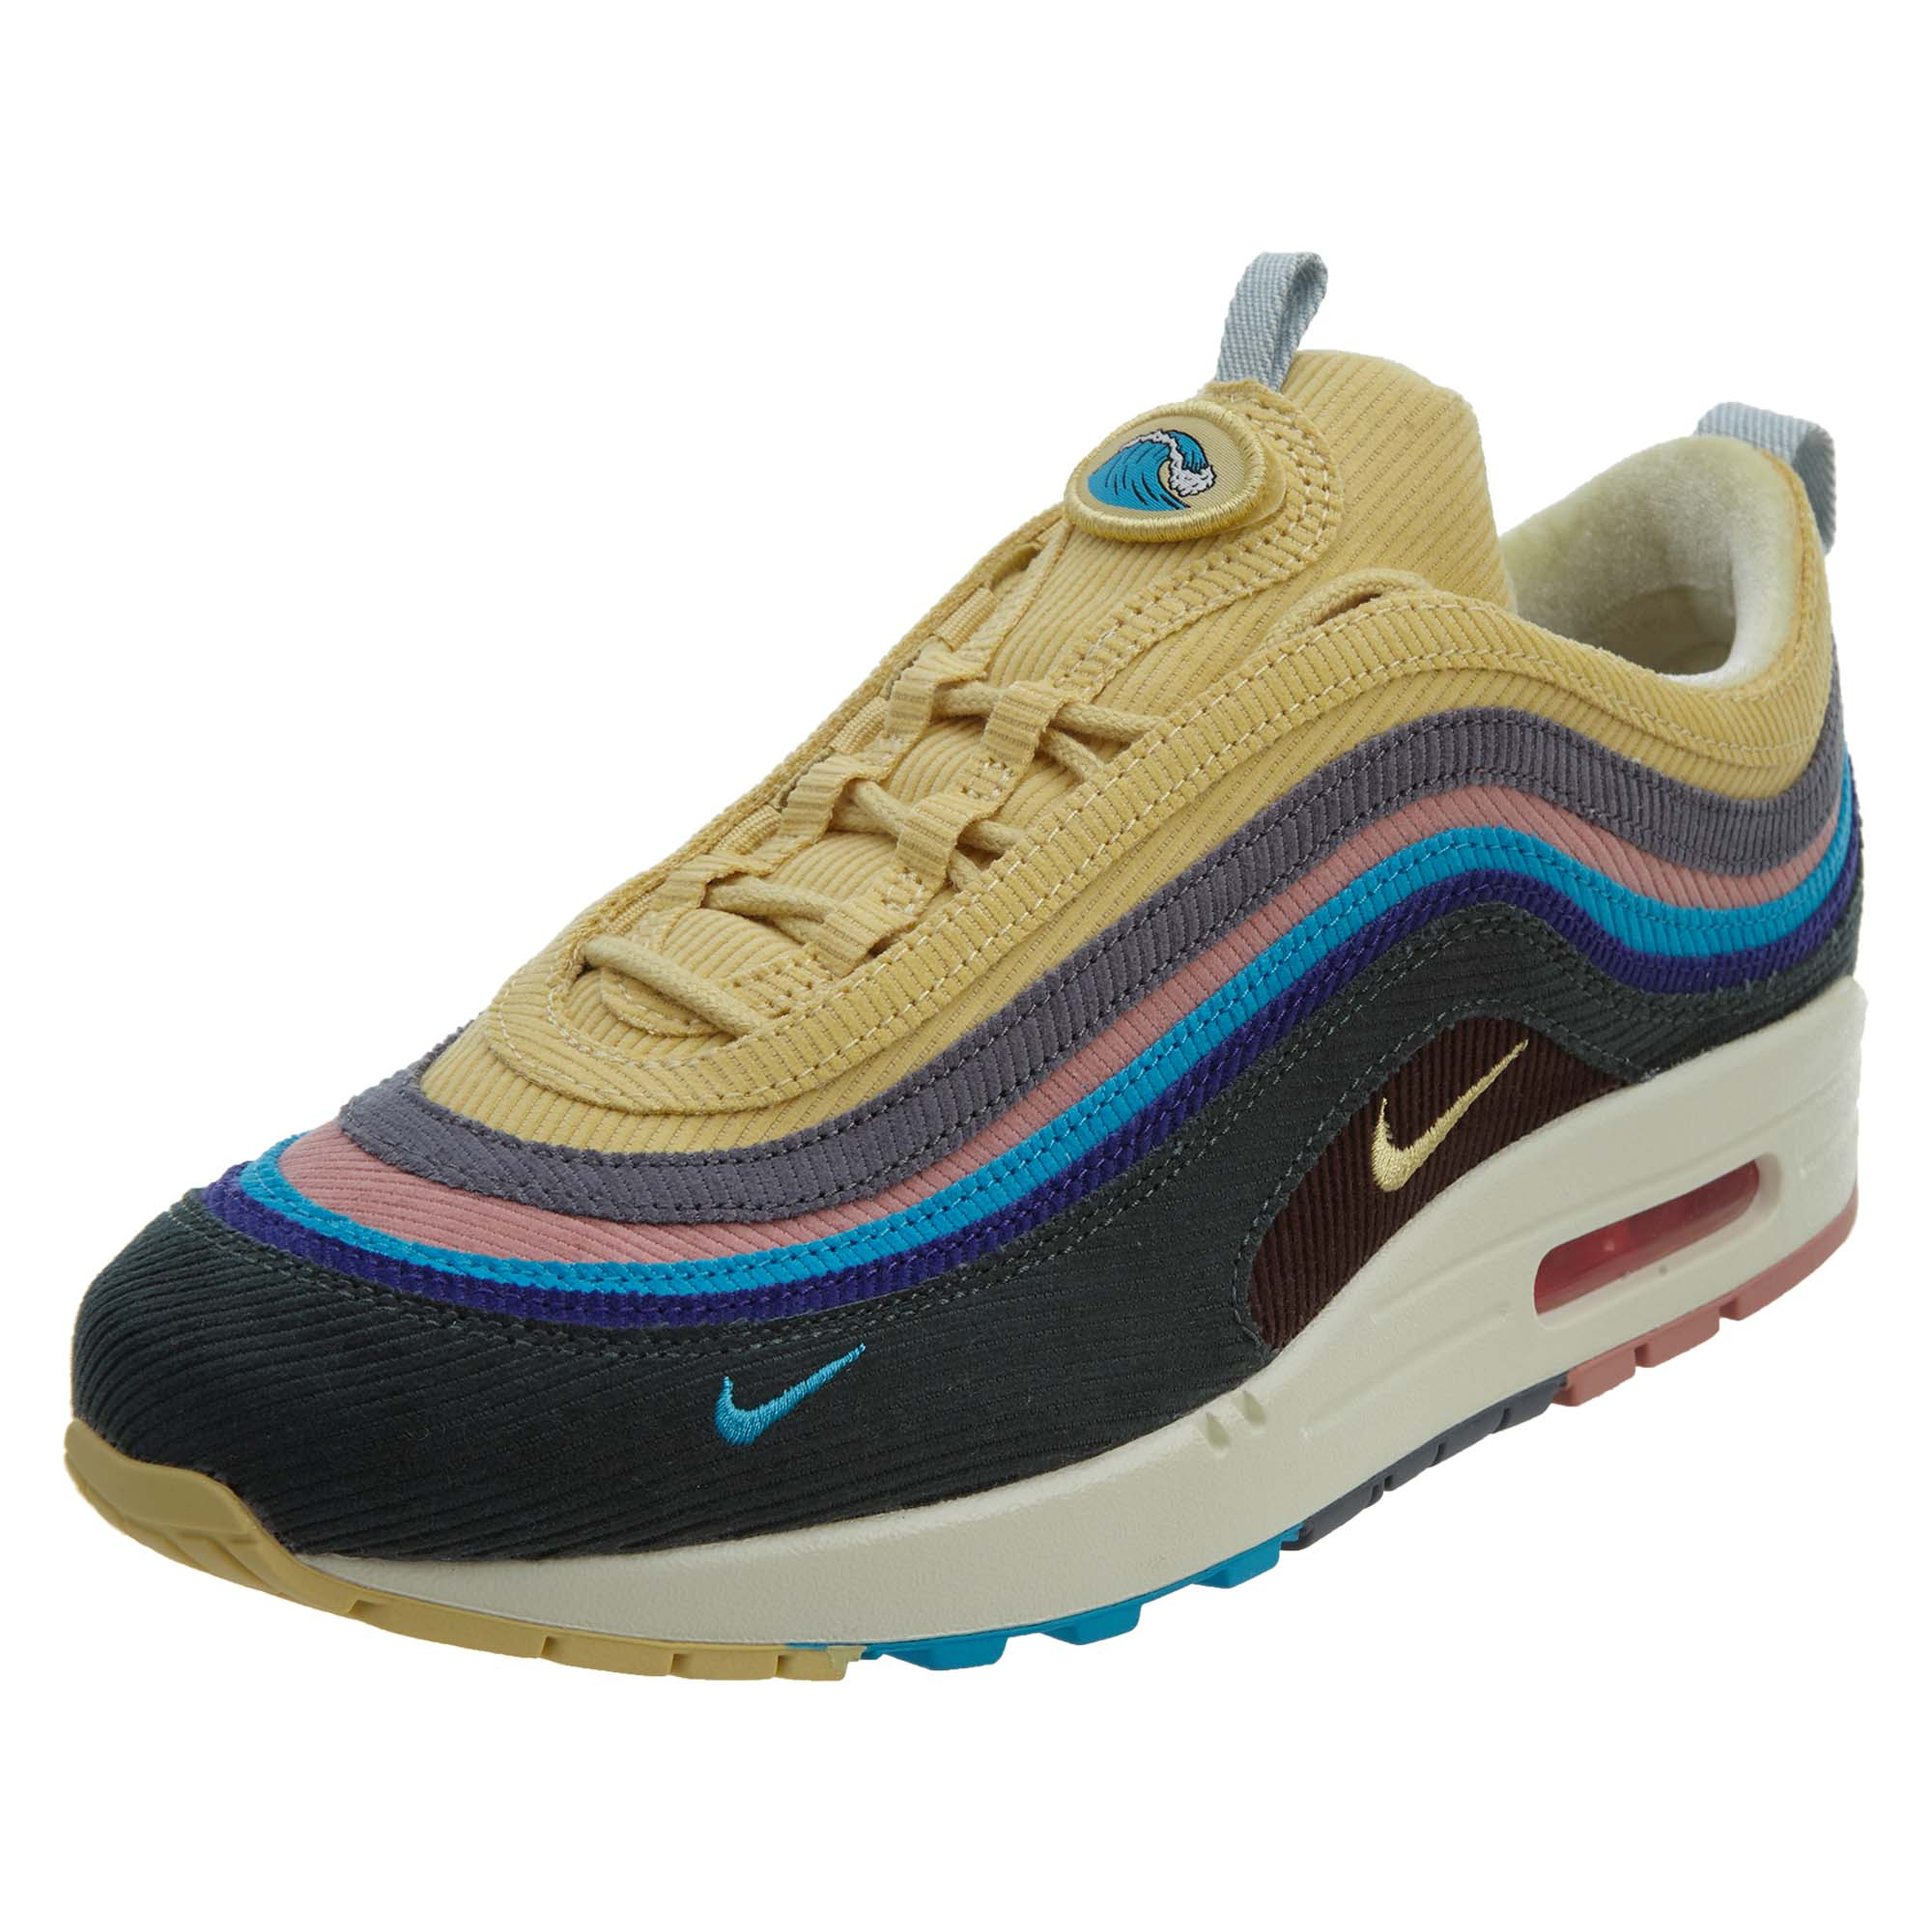 on sale aac38 4e970 Details about Nike Mens Air Max 1 97 Sean Wotherspoon Shoes AJ4219-400